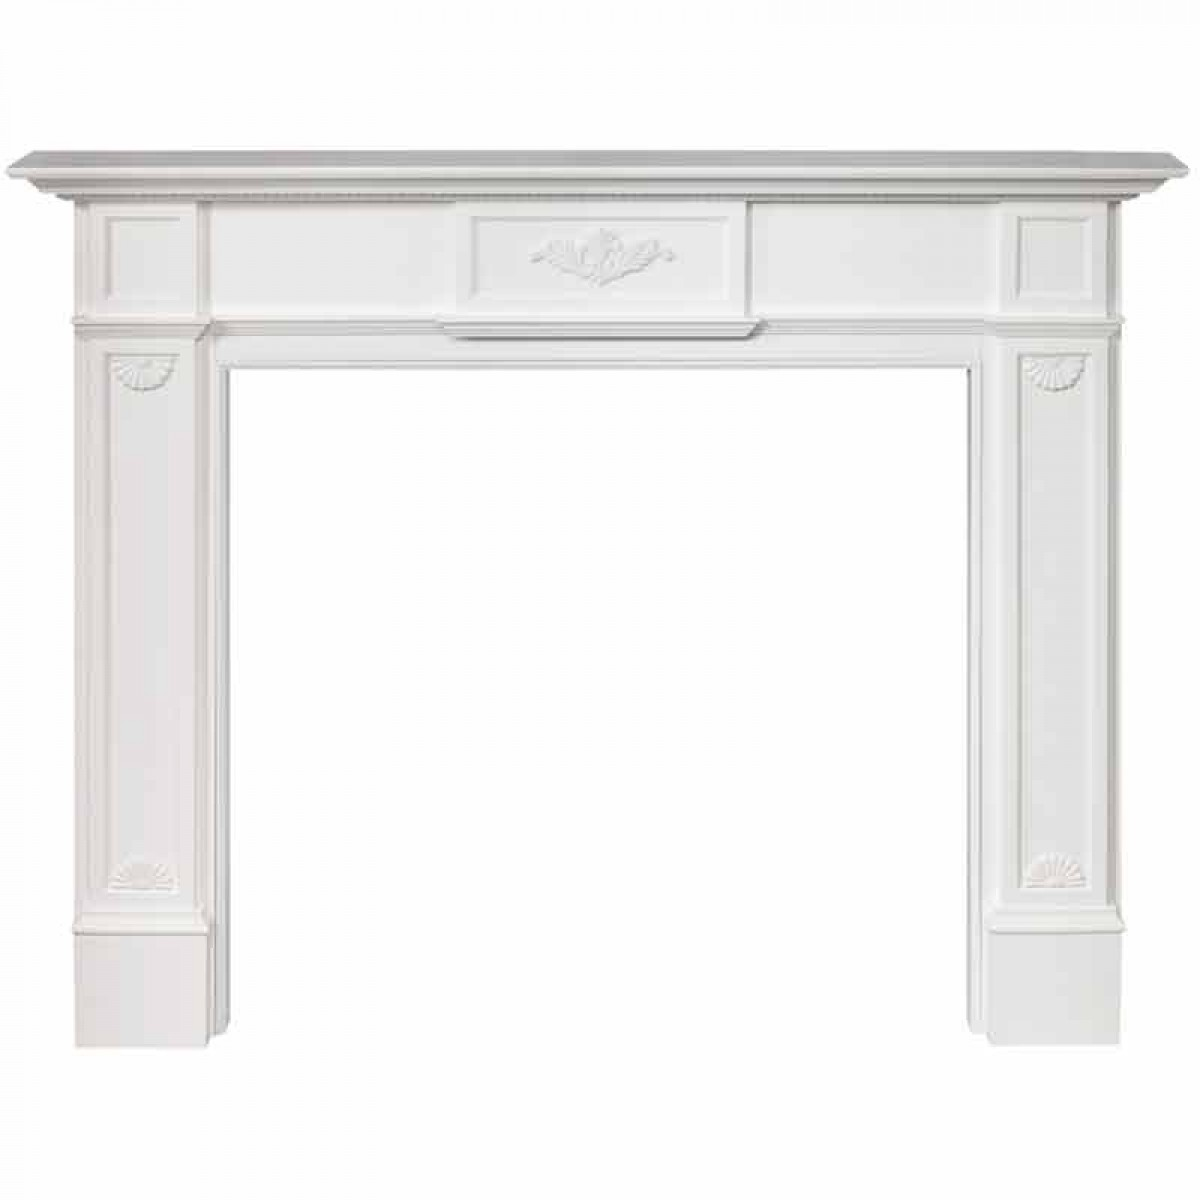 Pearl Mantels The Monticello Fireplace Mantel 530 48 At